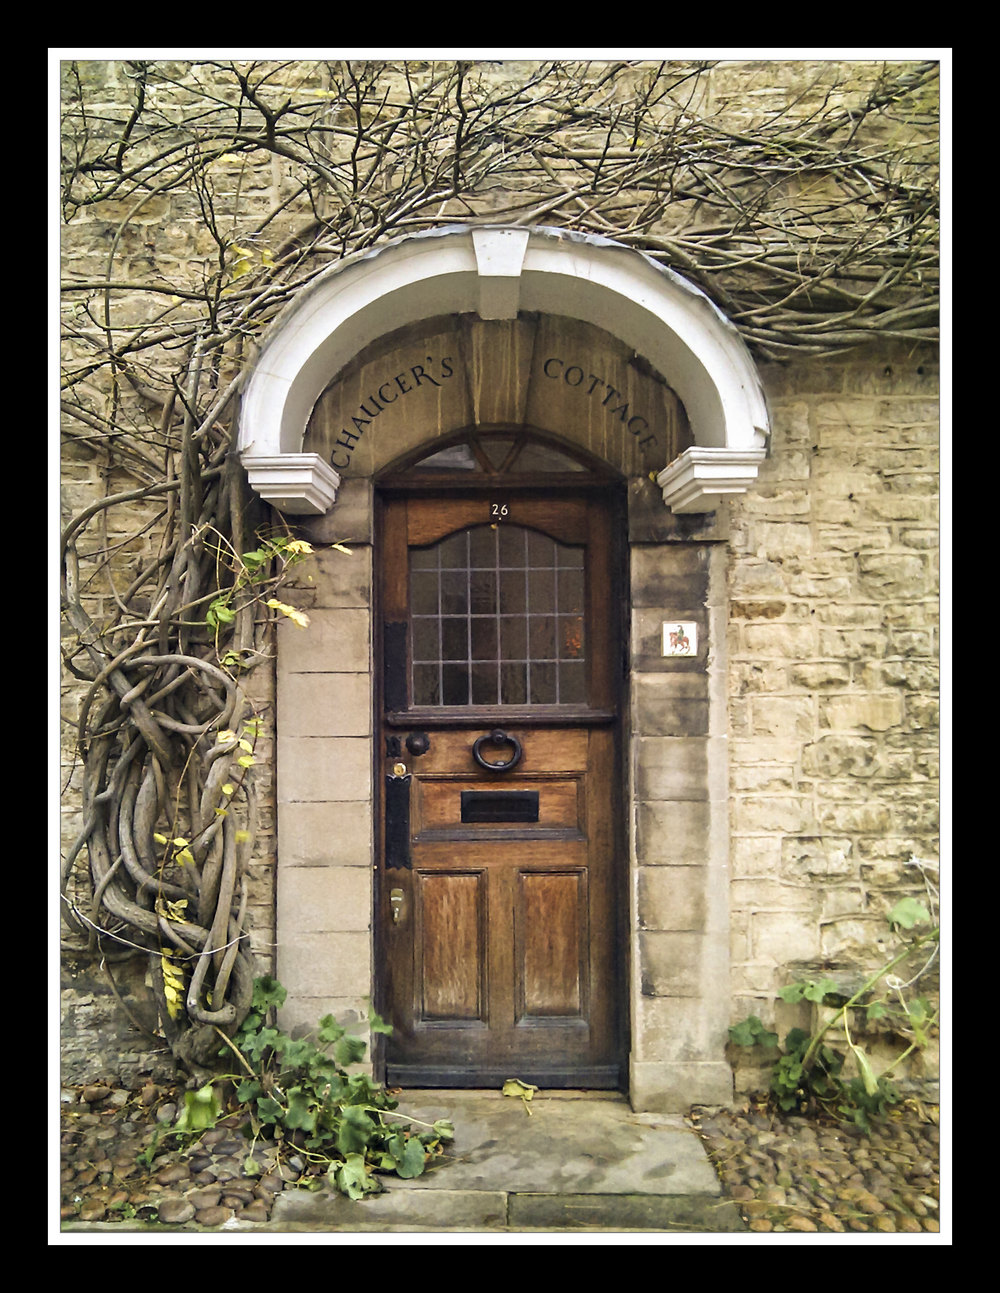 A doorway in Woodstock, Oxfordshire.